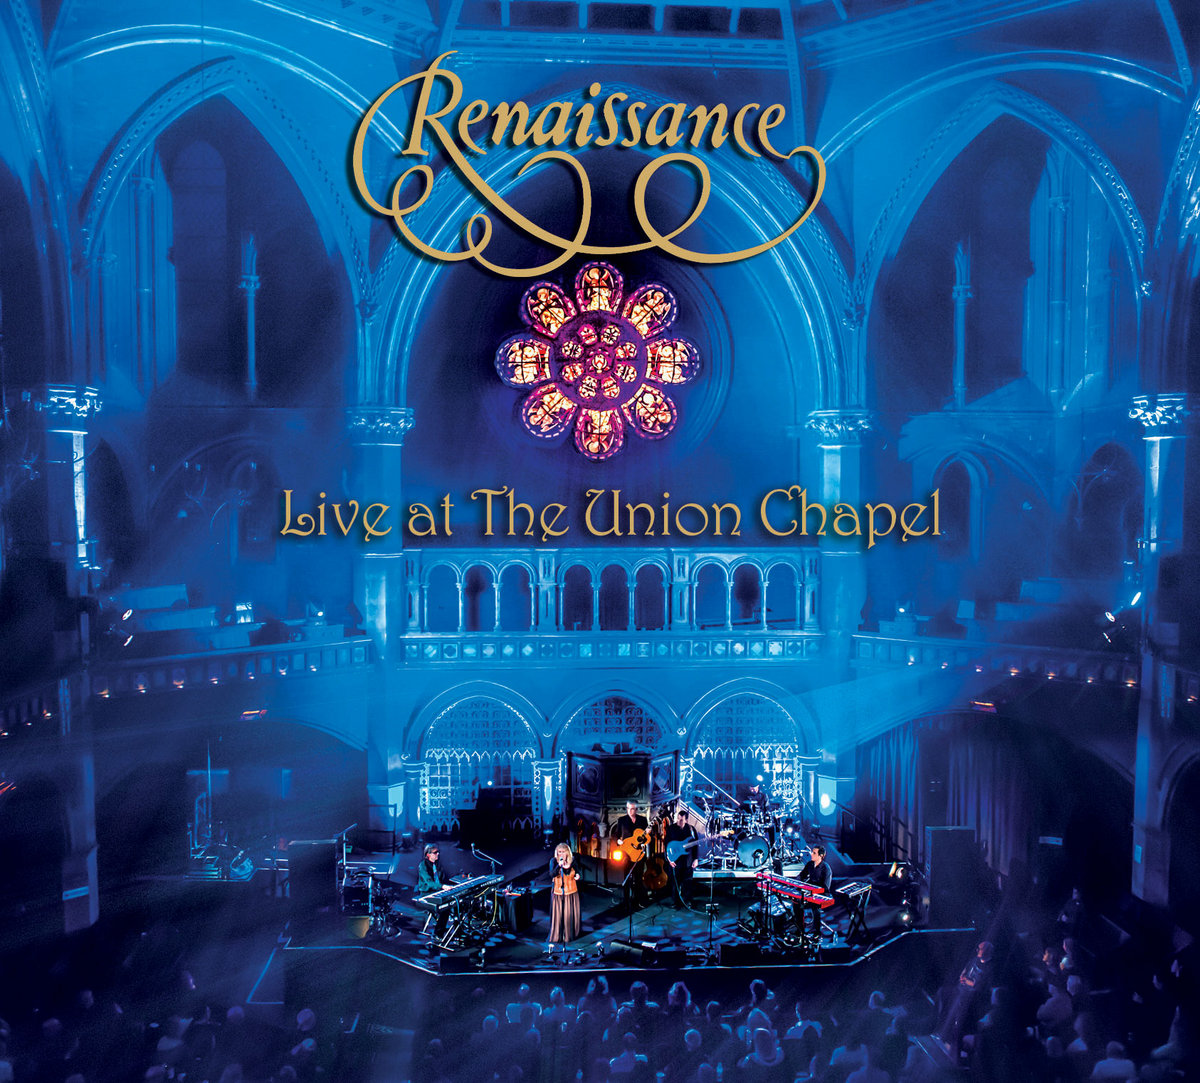 Live at The Union Chapel | Renaissance